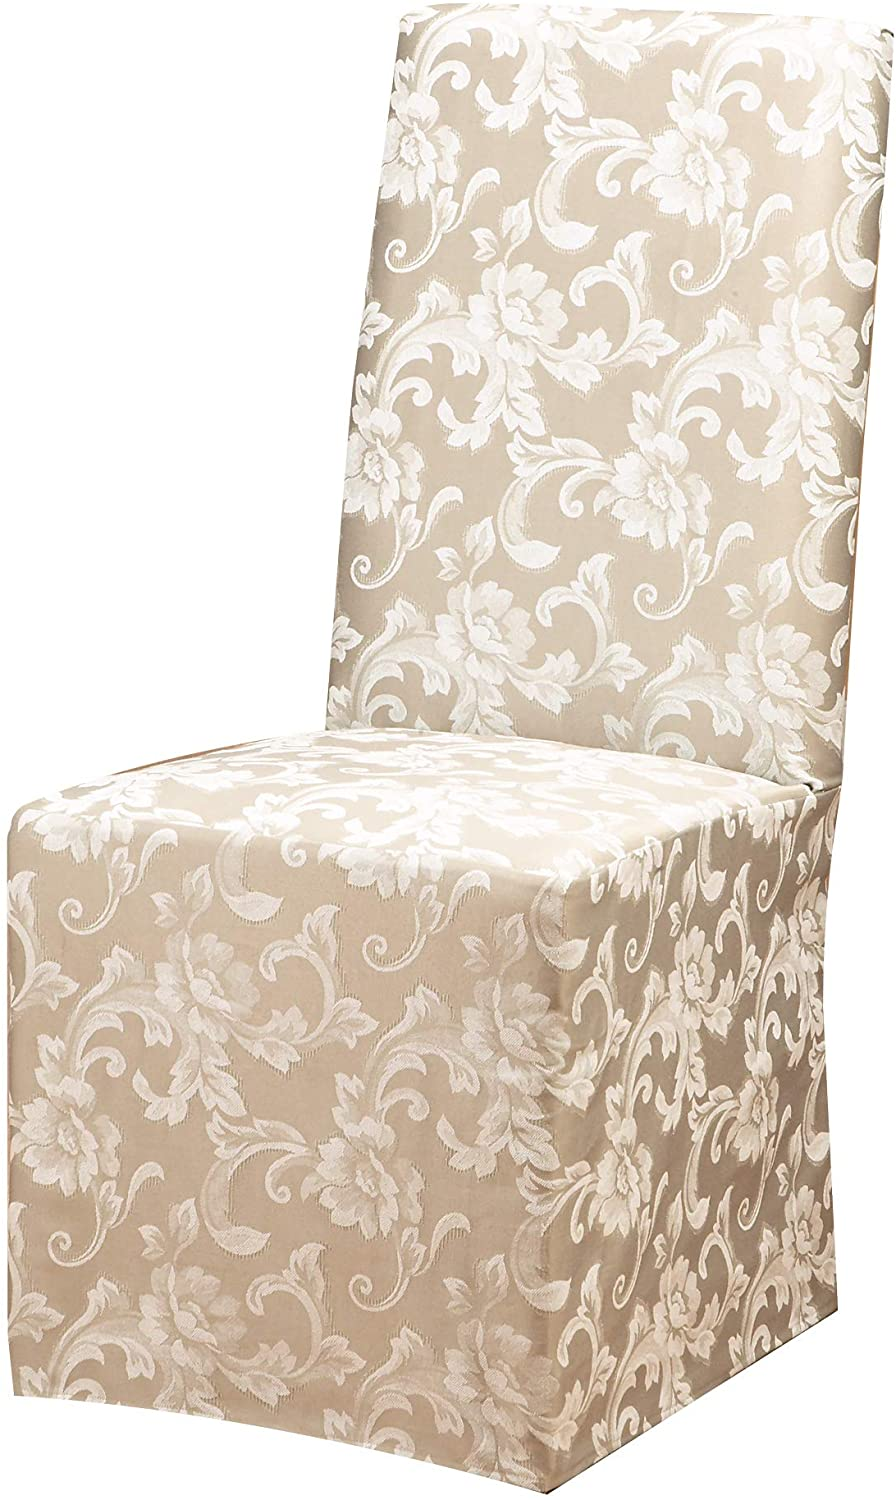 SureFit Scroll Long Dining Side Chair Slipcover - Adjustable Fit - Polyester and Cotton Blend - Up to 42 Inches Tall - Machine Wash - Champagne